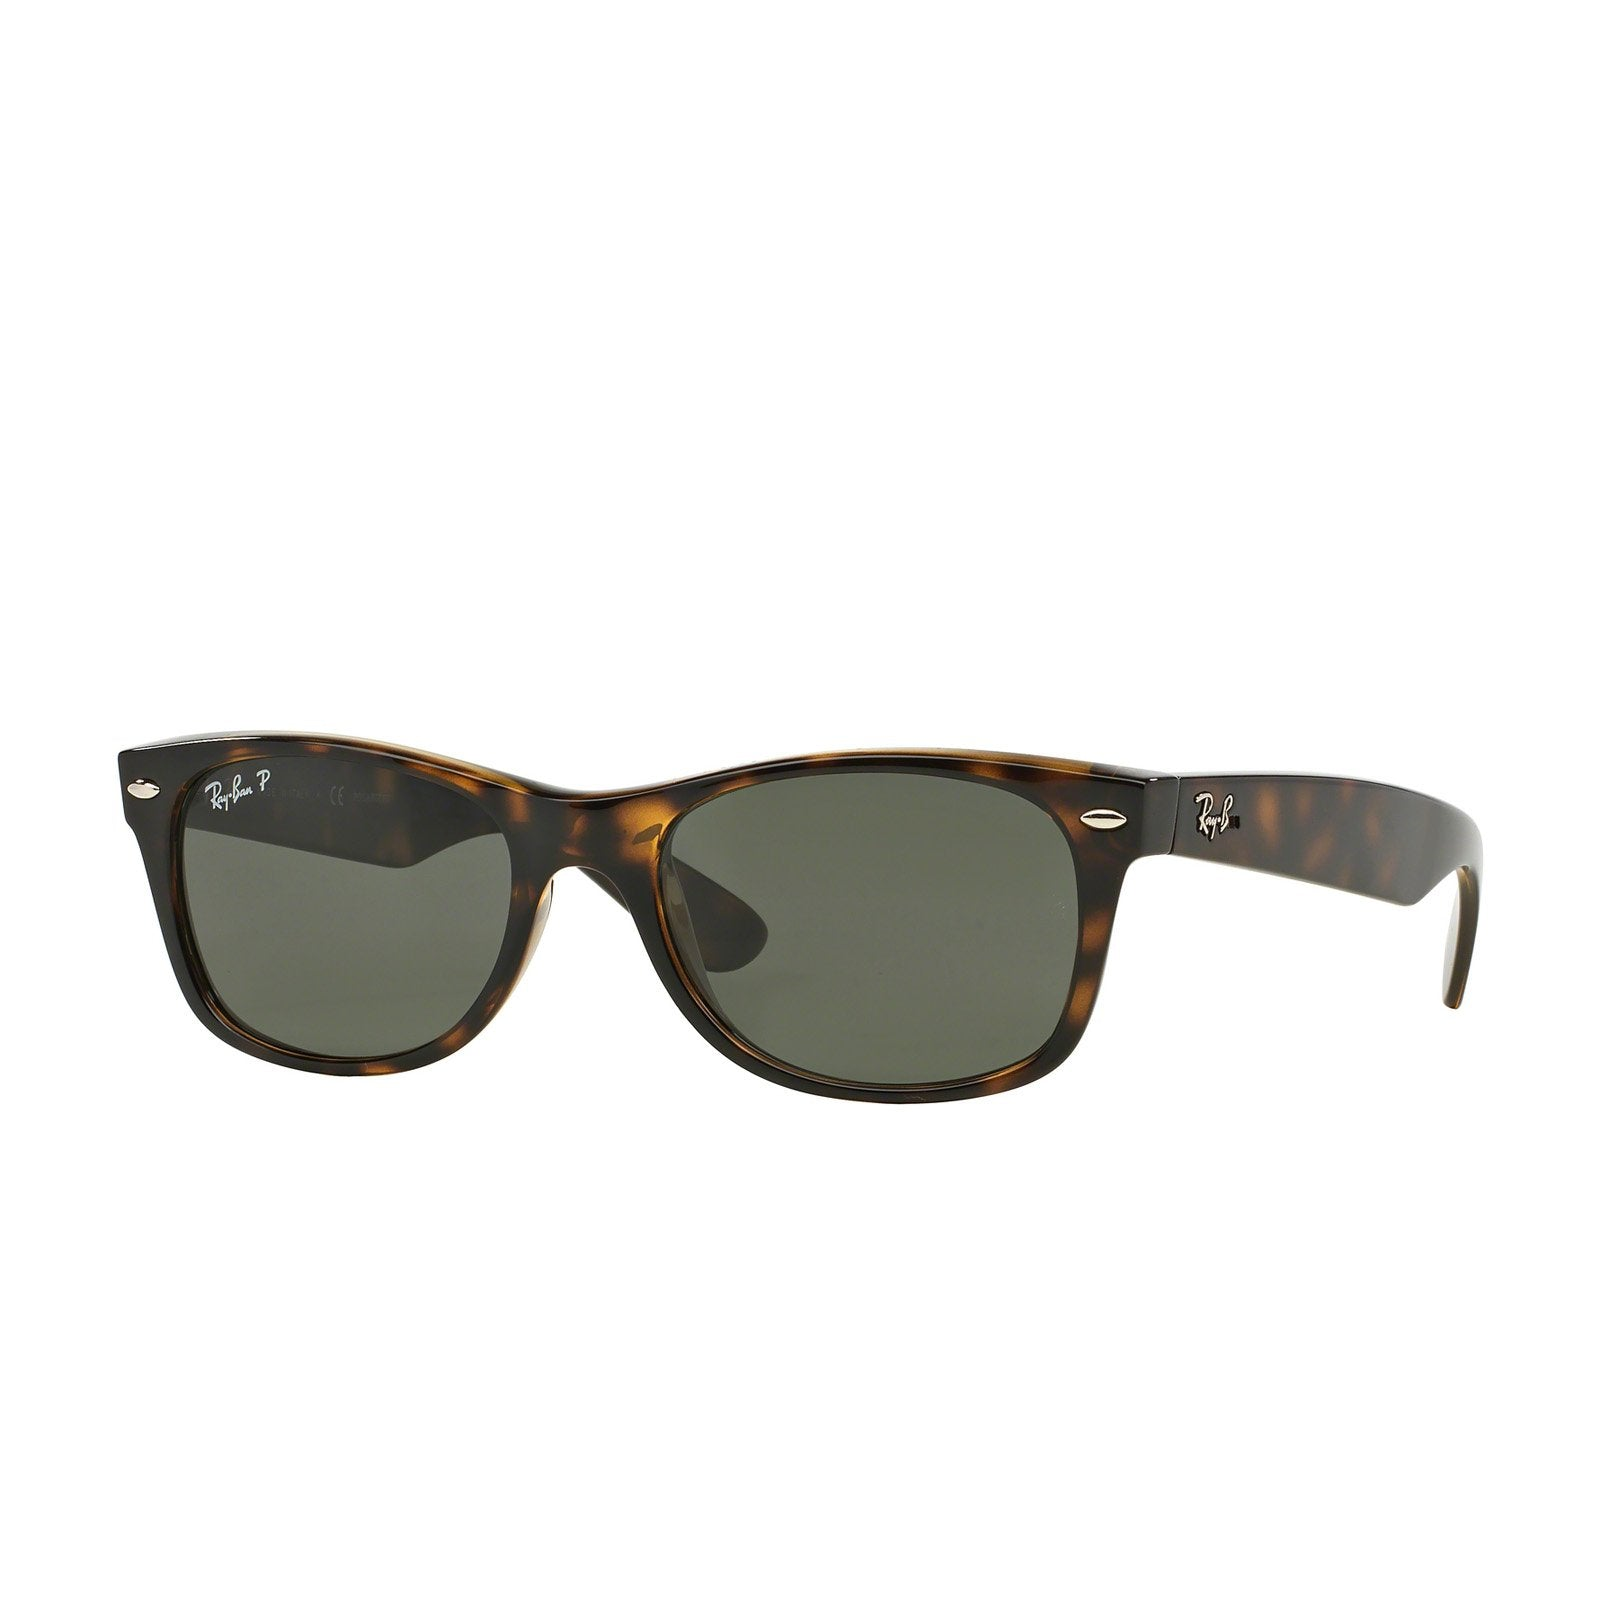 Ray-Ban RB2132 902/58 Sunglasses